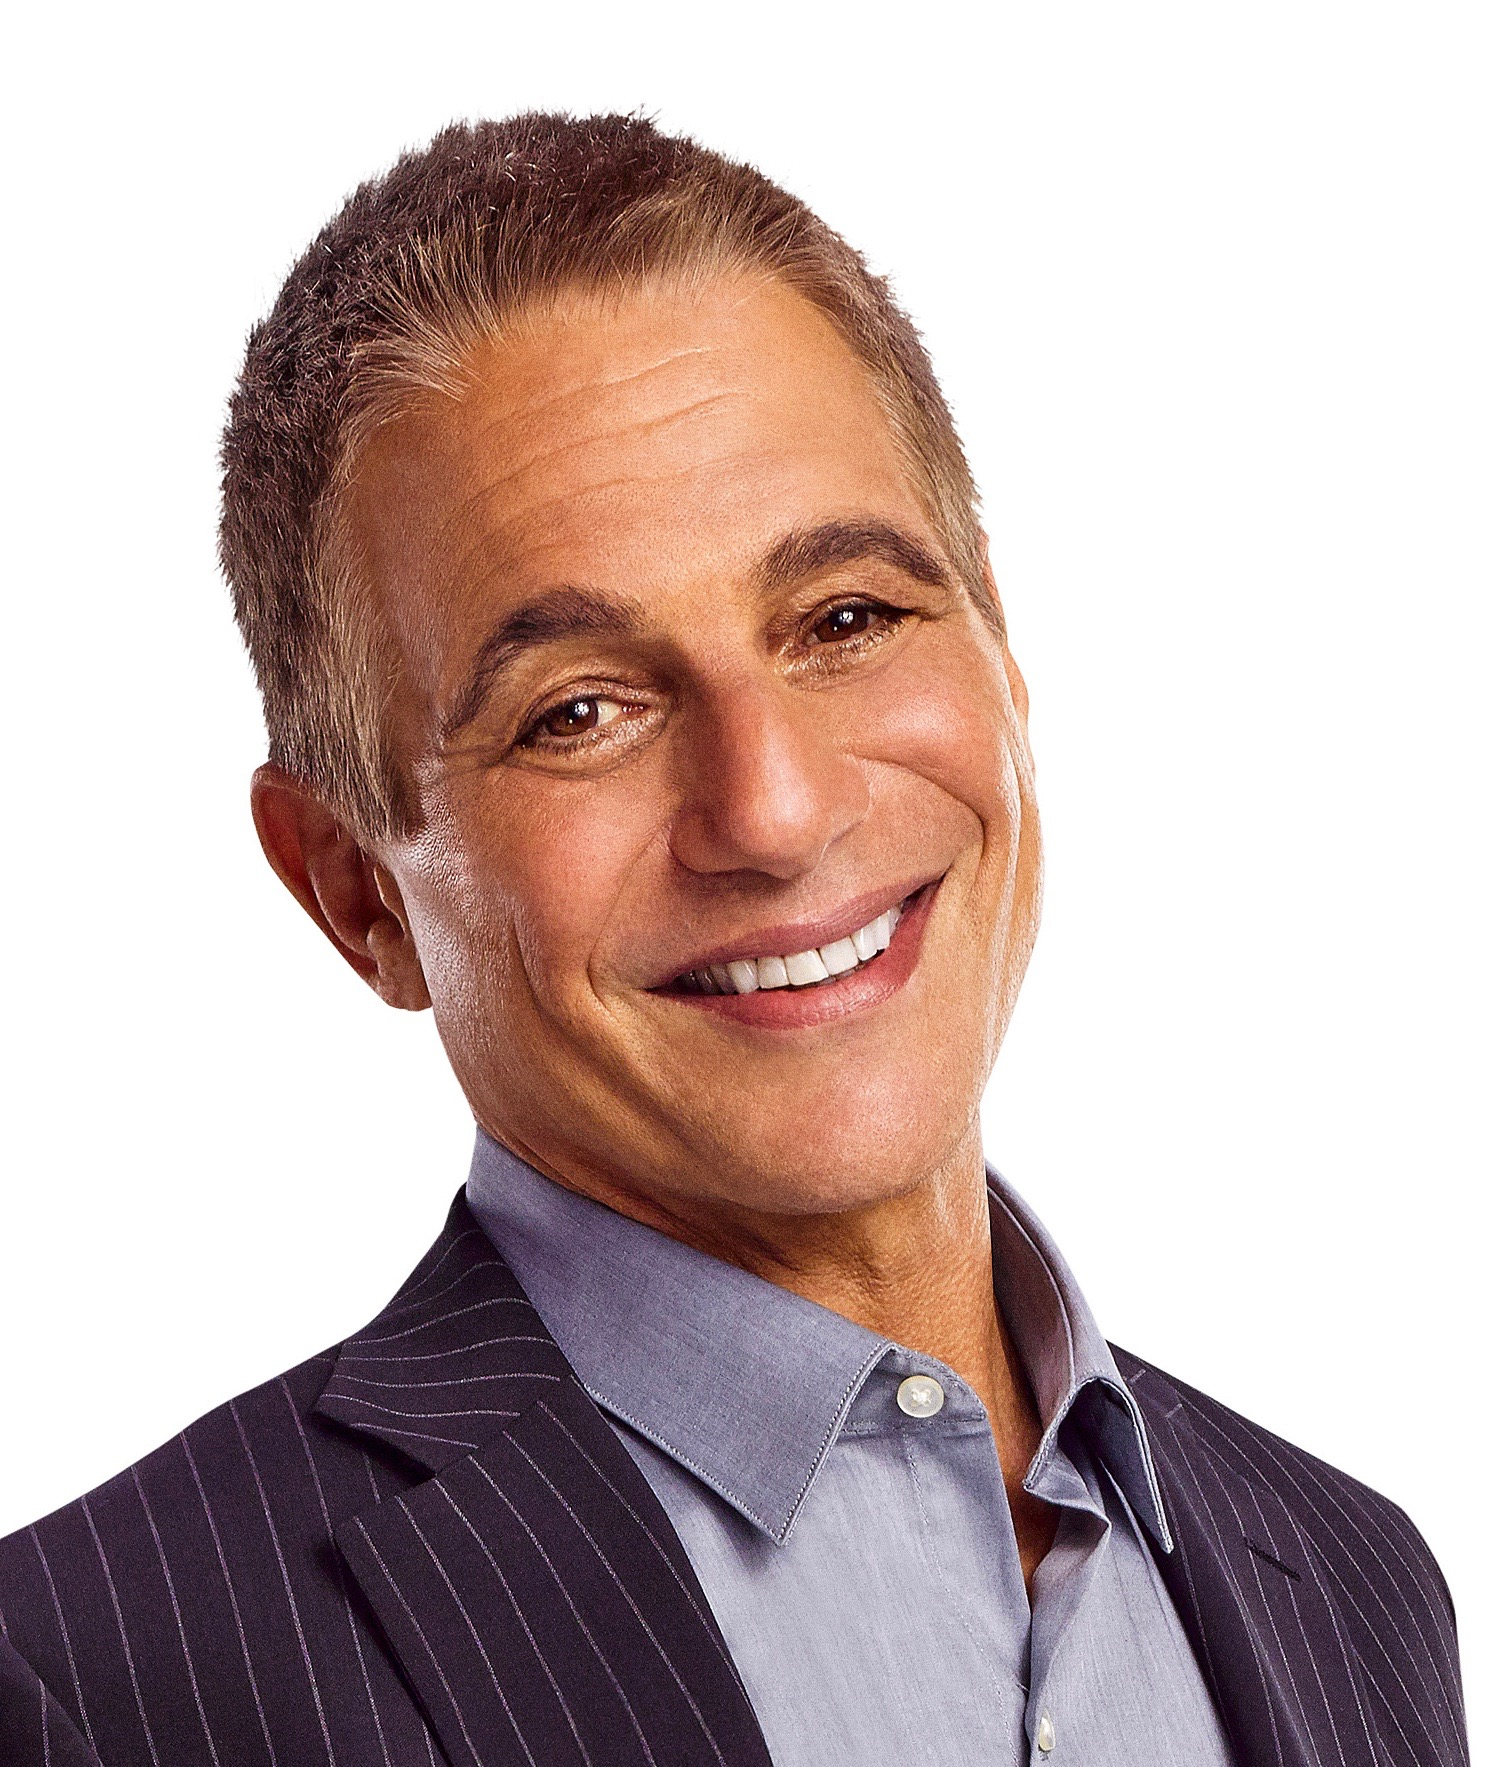 TONY DANZA ON THE TODAY SHOW!